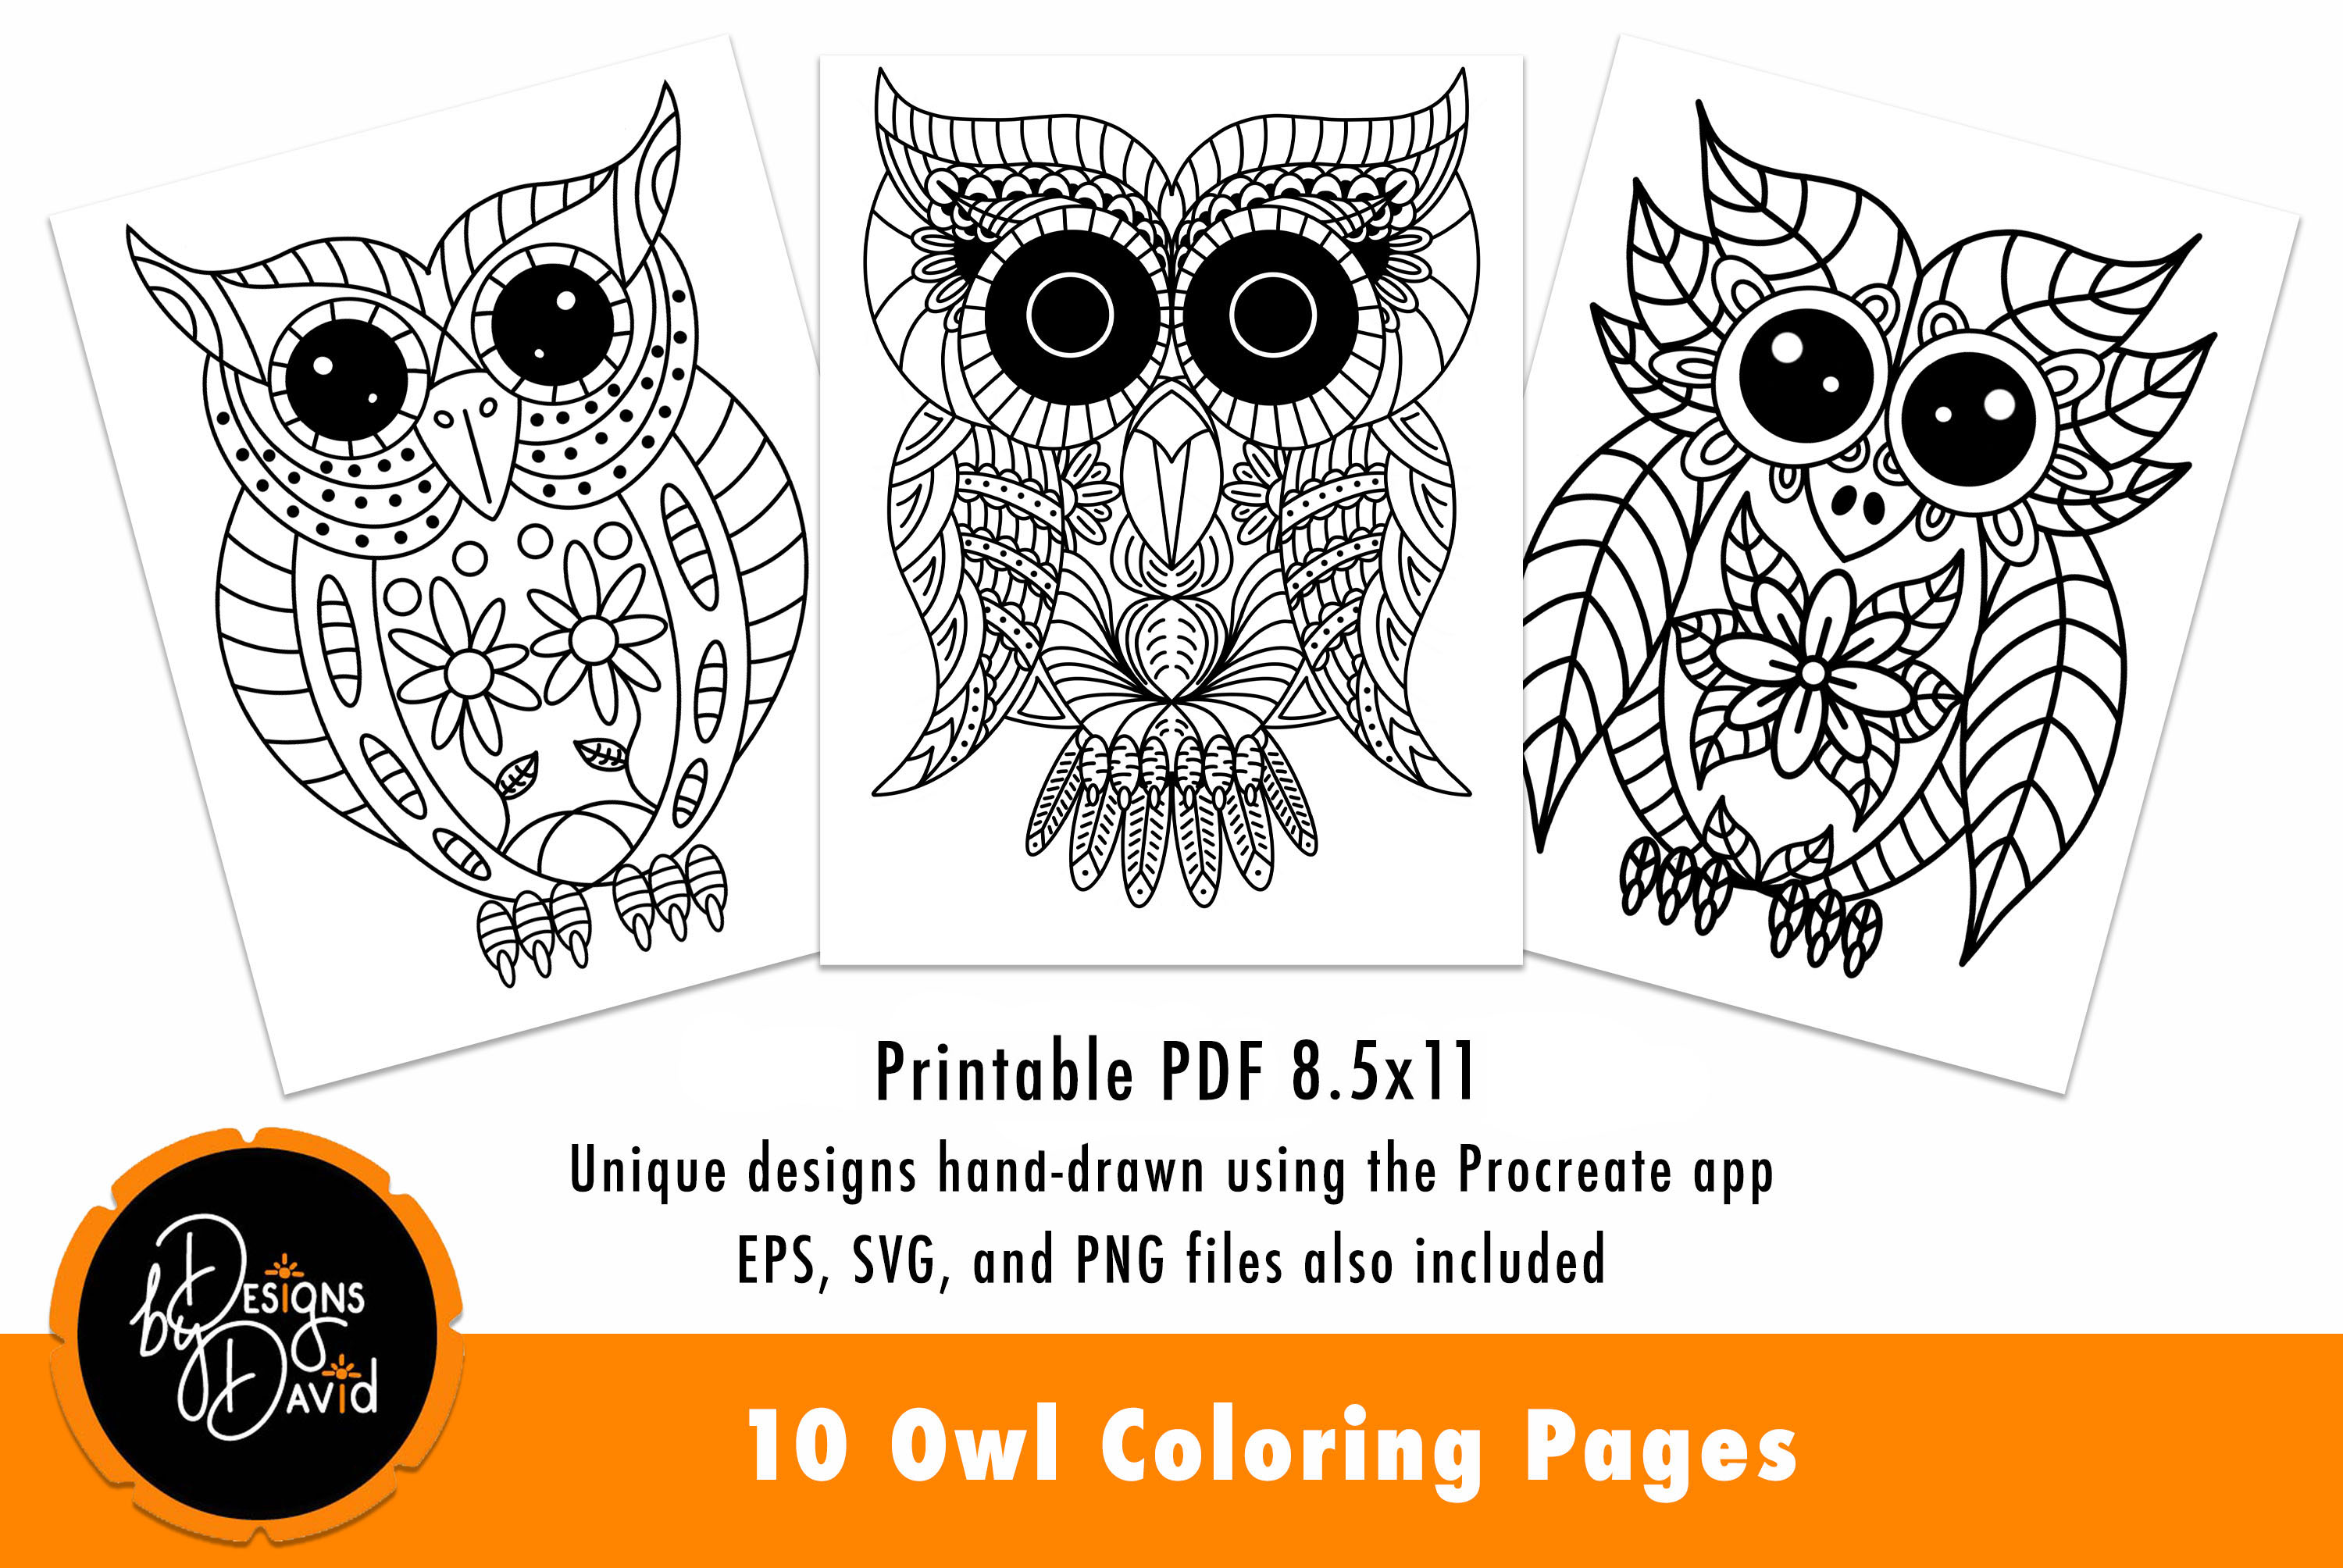 Download Free 10 Owl Coloring Pages Hand Drawn Graphic By Designs By David for Cricut Explore, Silhouette and other cutting machines.